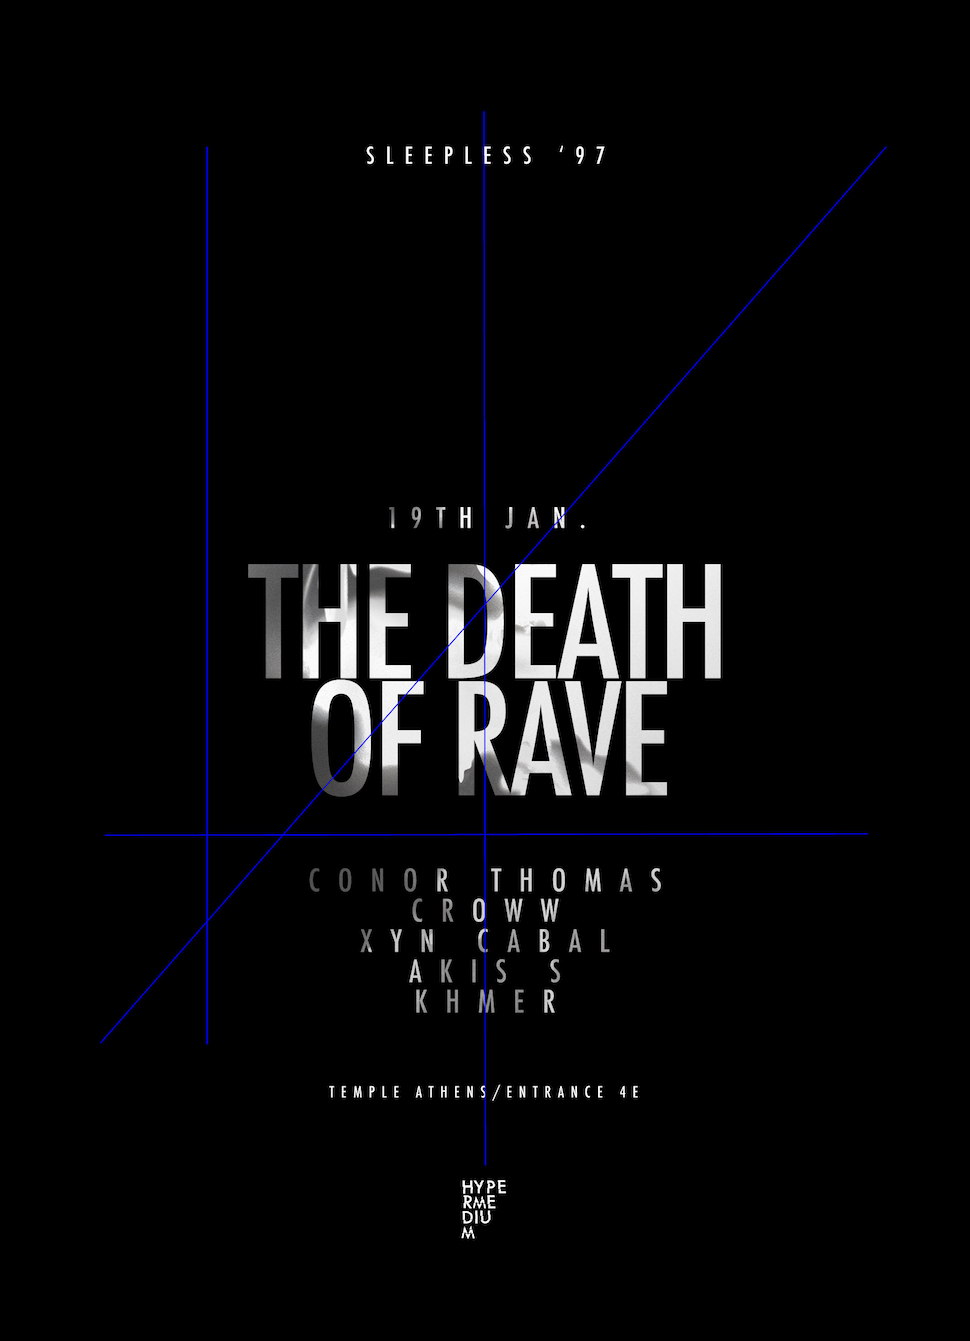 Death of Rave flyer